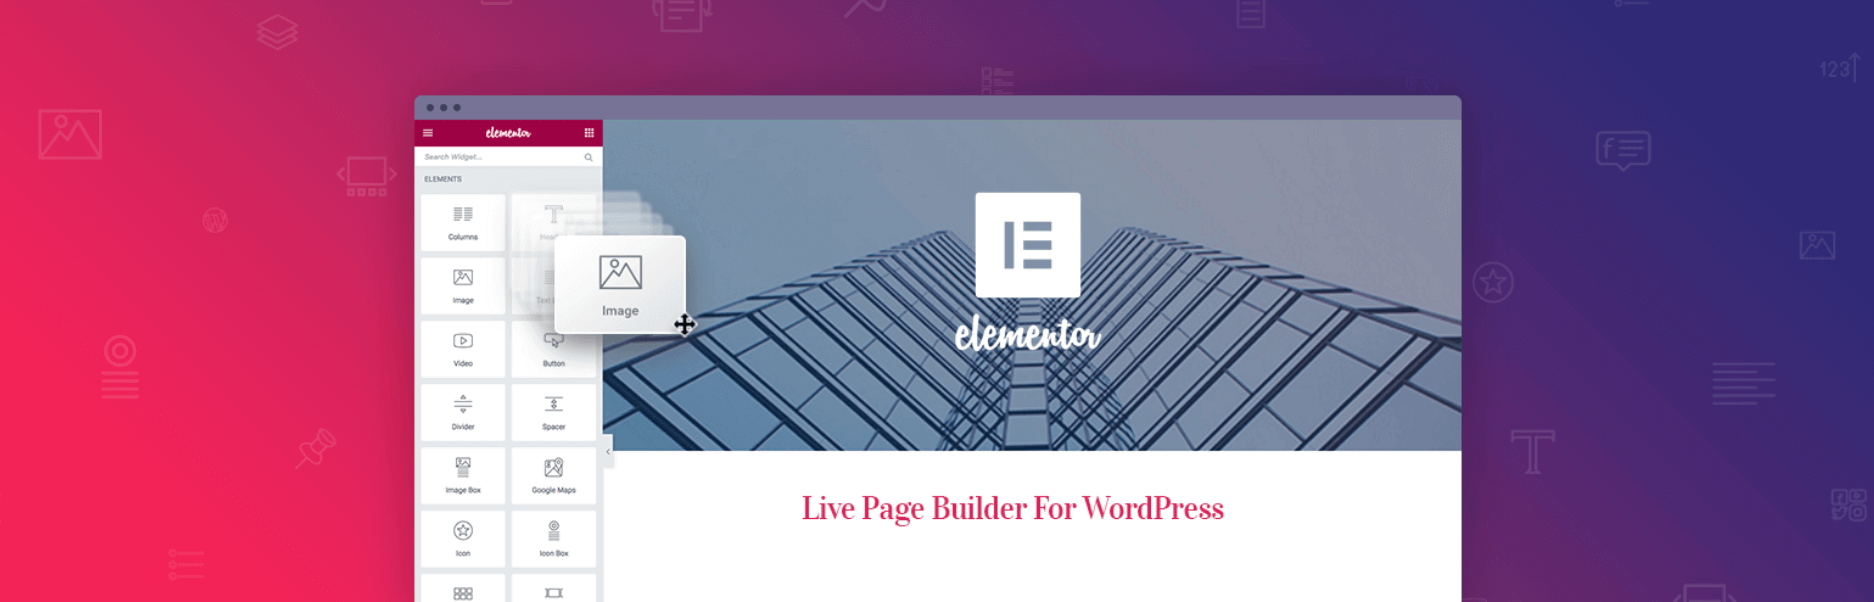 Elementor Page Builder wp plugin